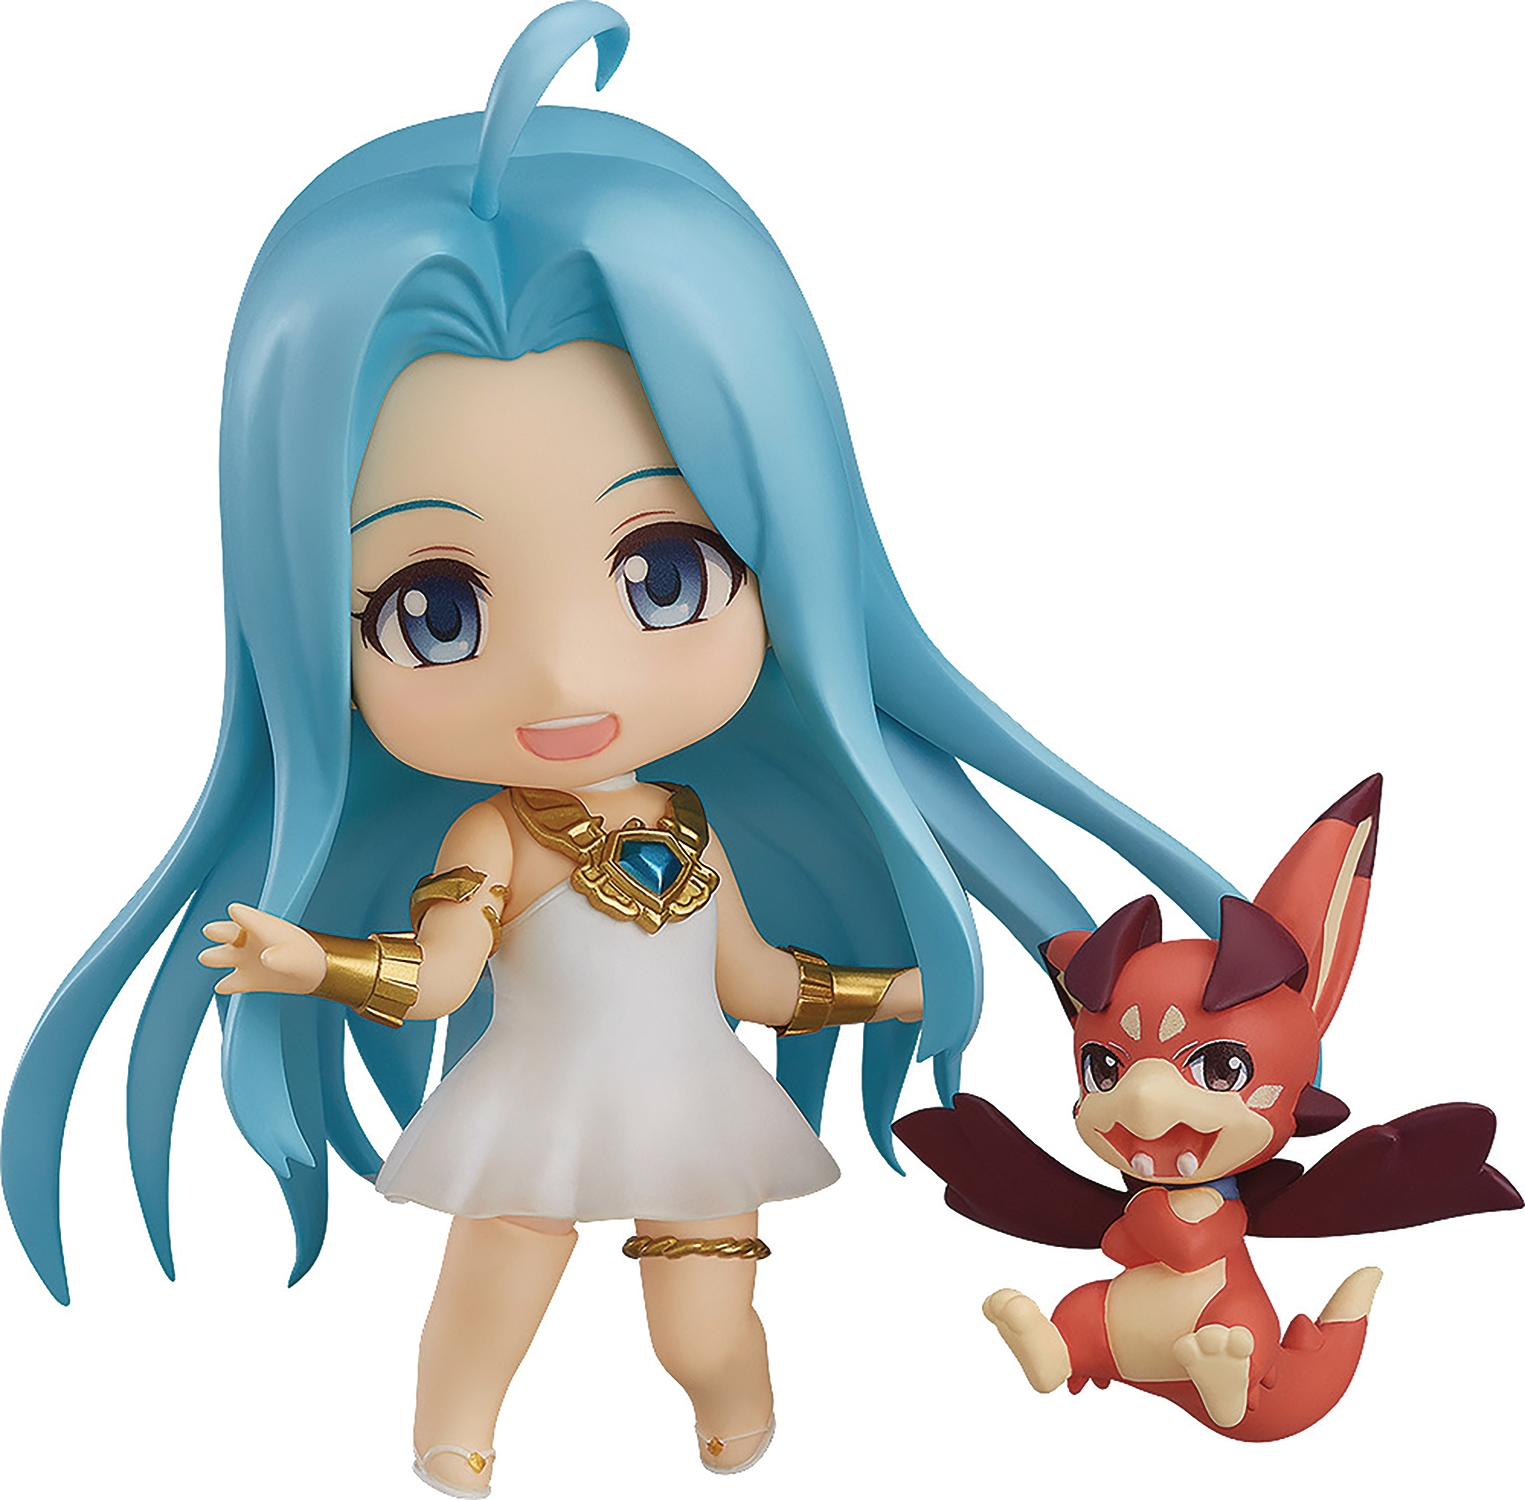 Granblue Fantasy: Lyria (Nendoroid)